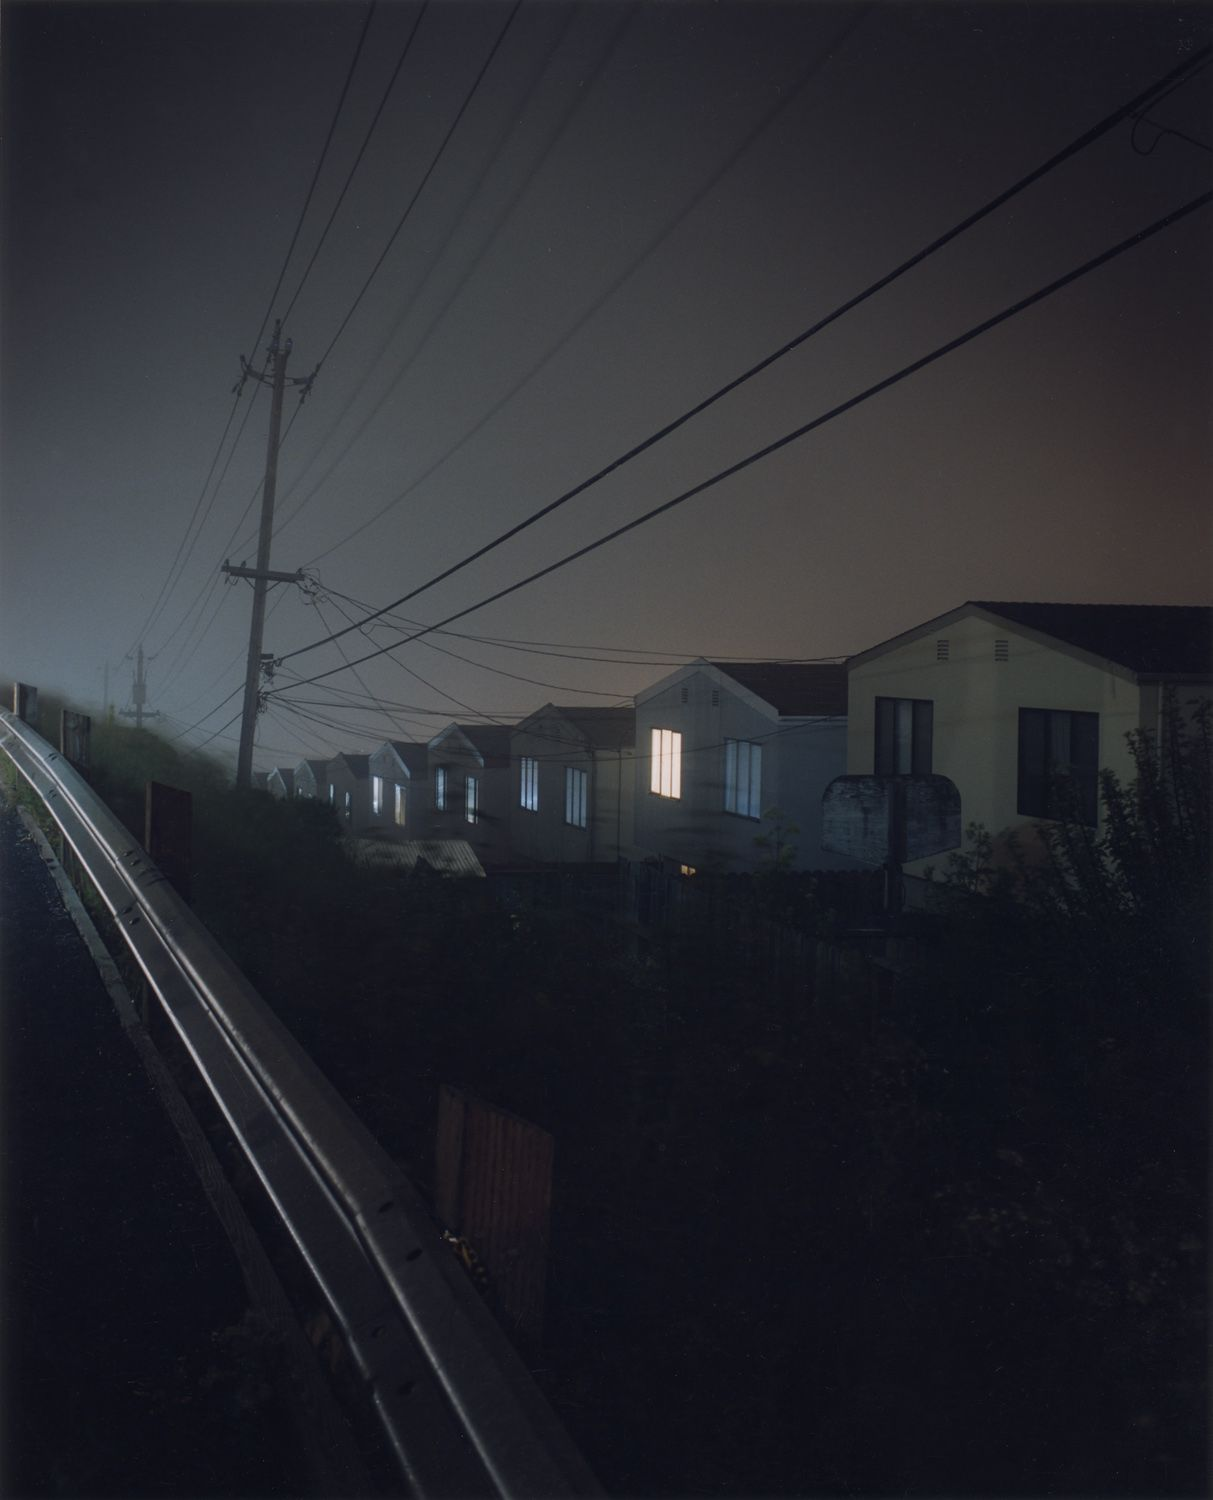 likeafieldmouse: Todd Hido - Homes at Night | Pinterest | Todd hido ...